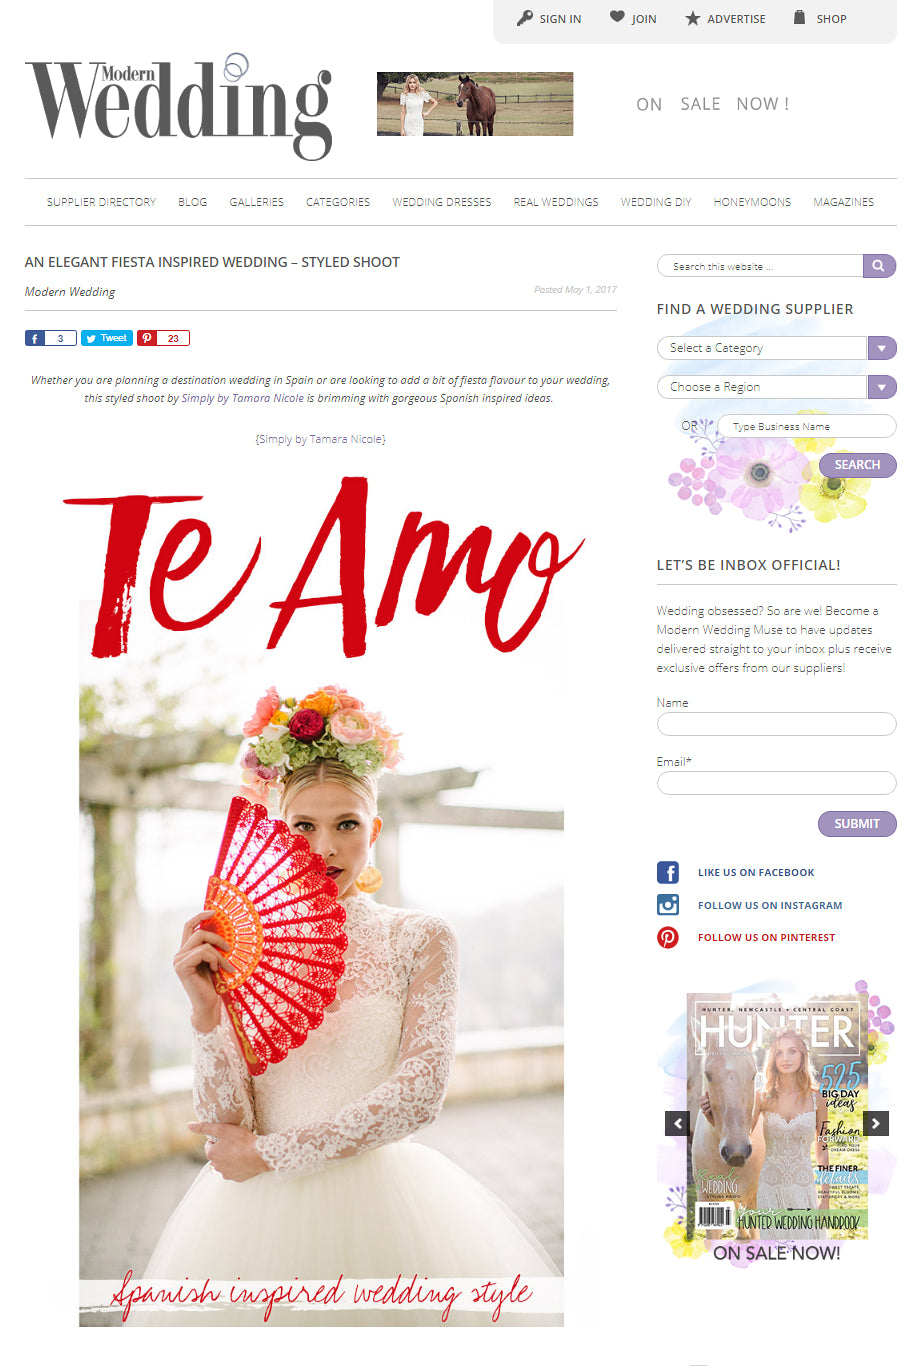 MCC Red Spanish Lace Hand Fan featured at the Modern Weddings